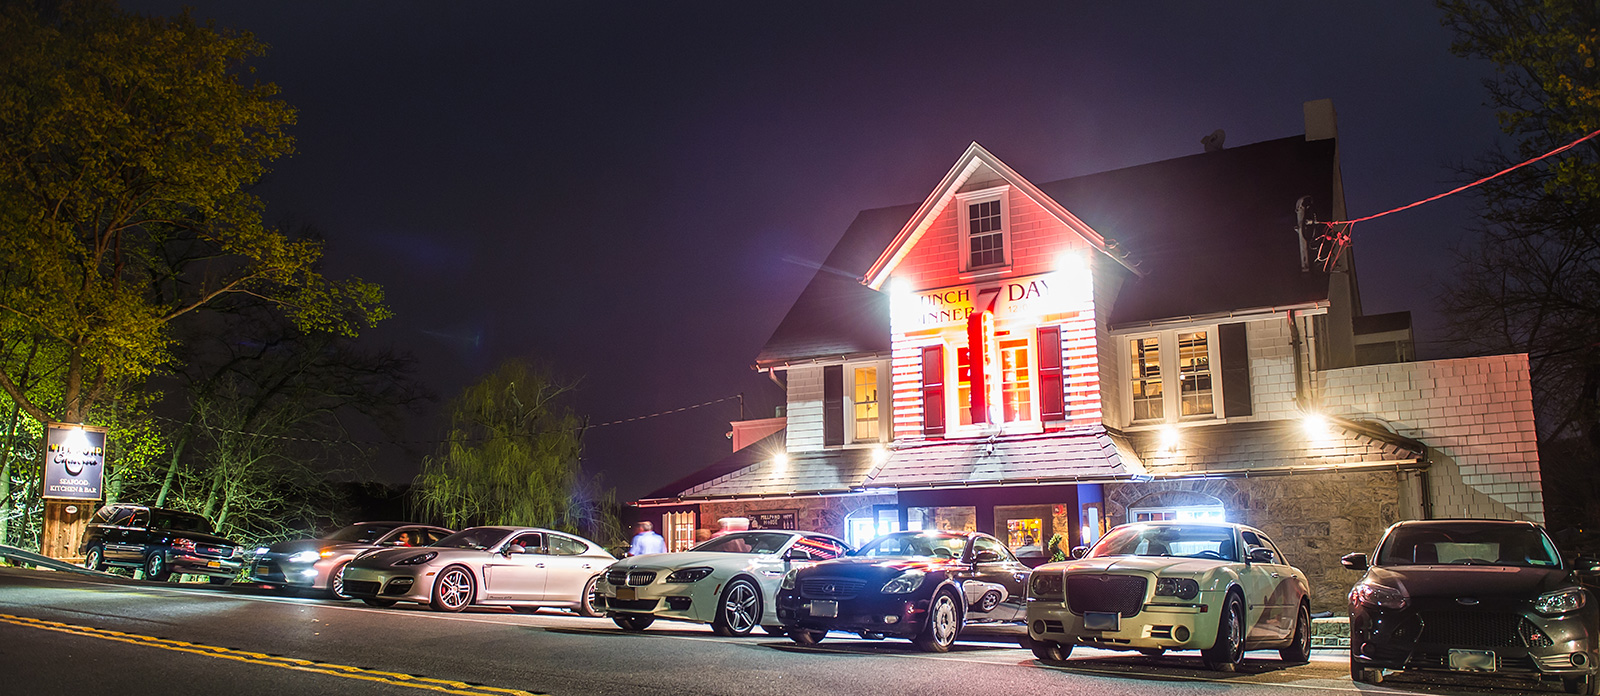 Mill Pond House at 437 E Main St., Centerport is offering during select times this winter a $29.95 prix-fixe menu.